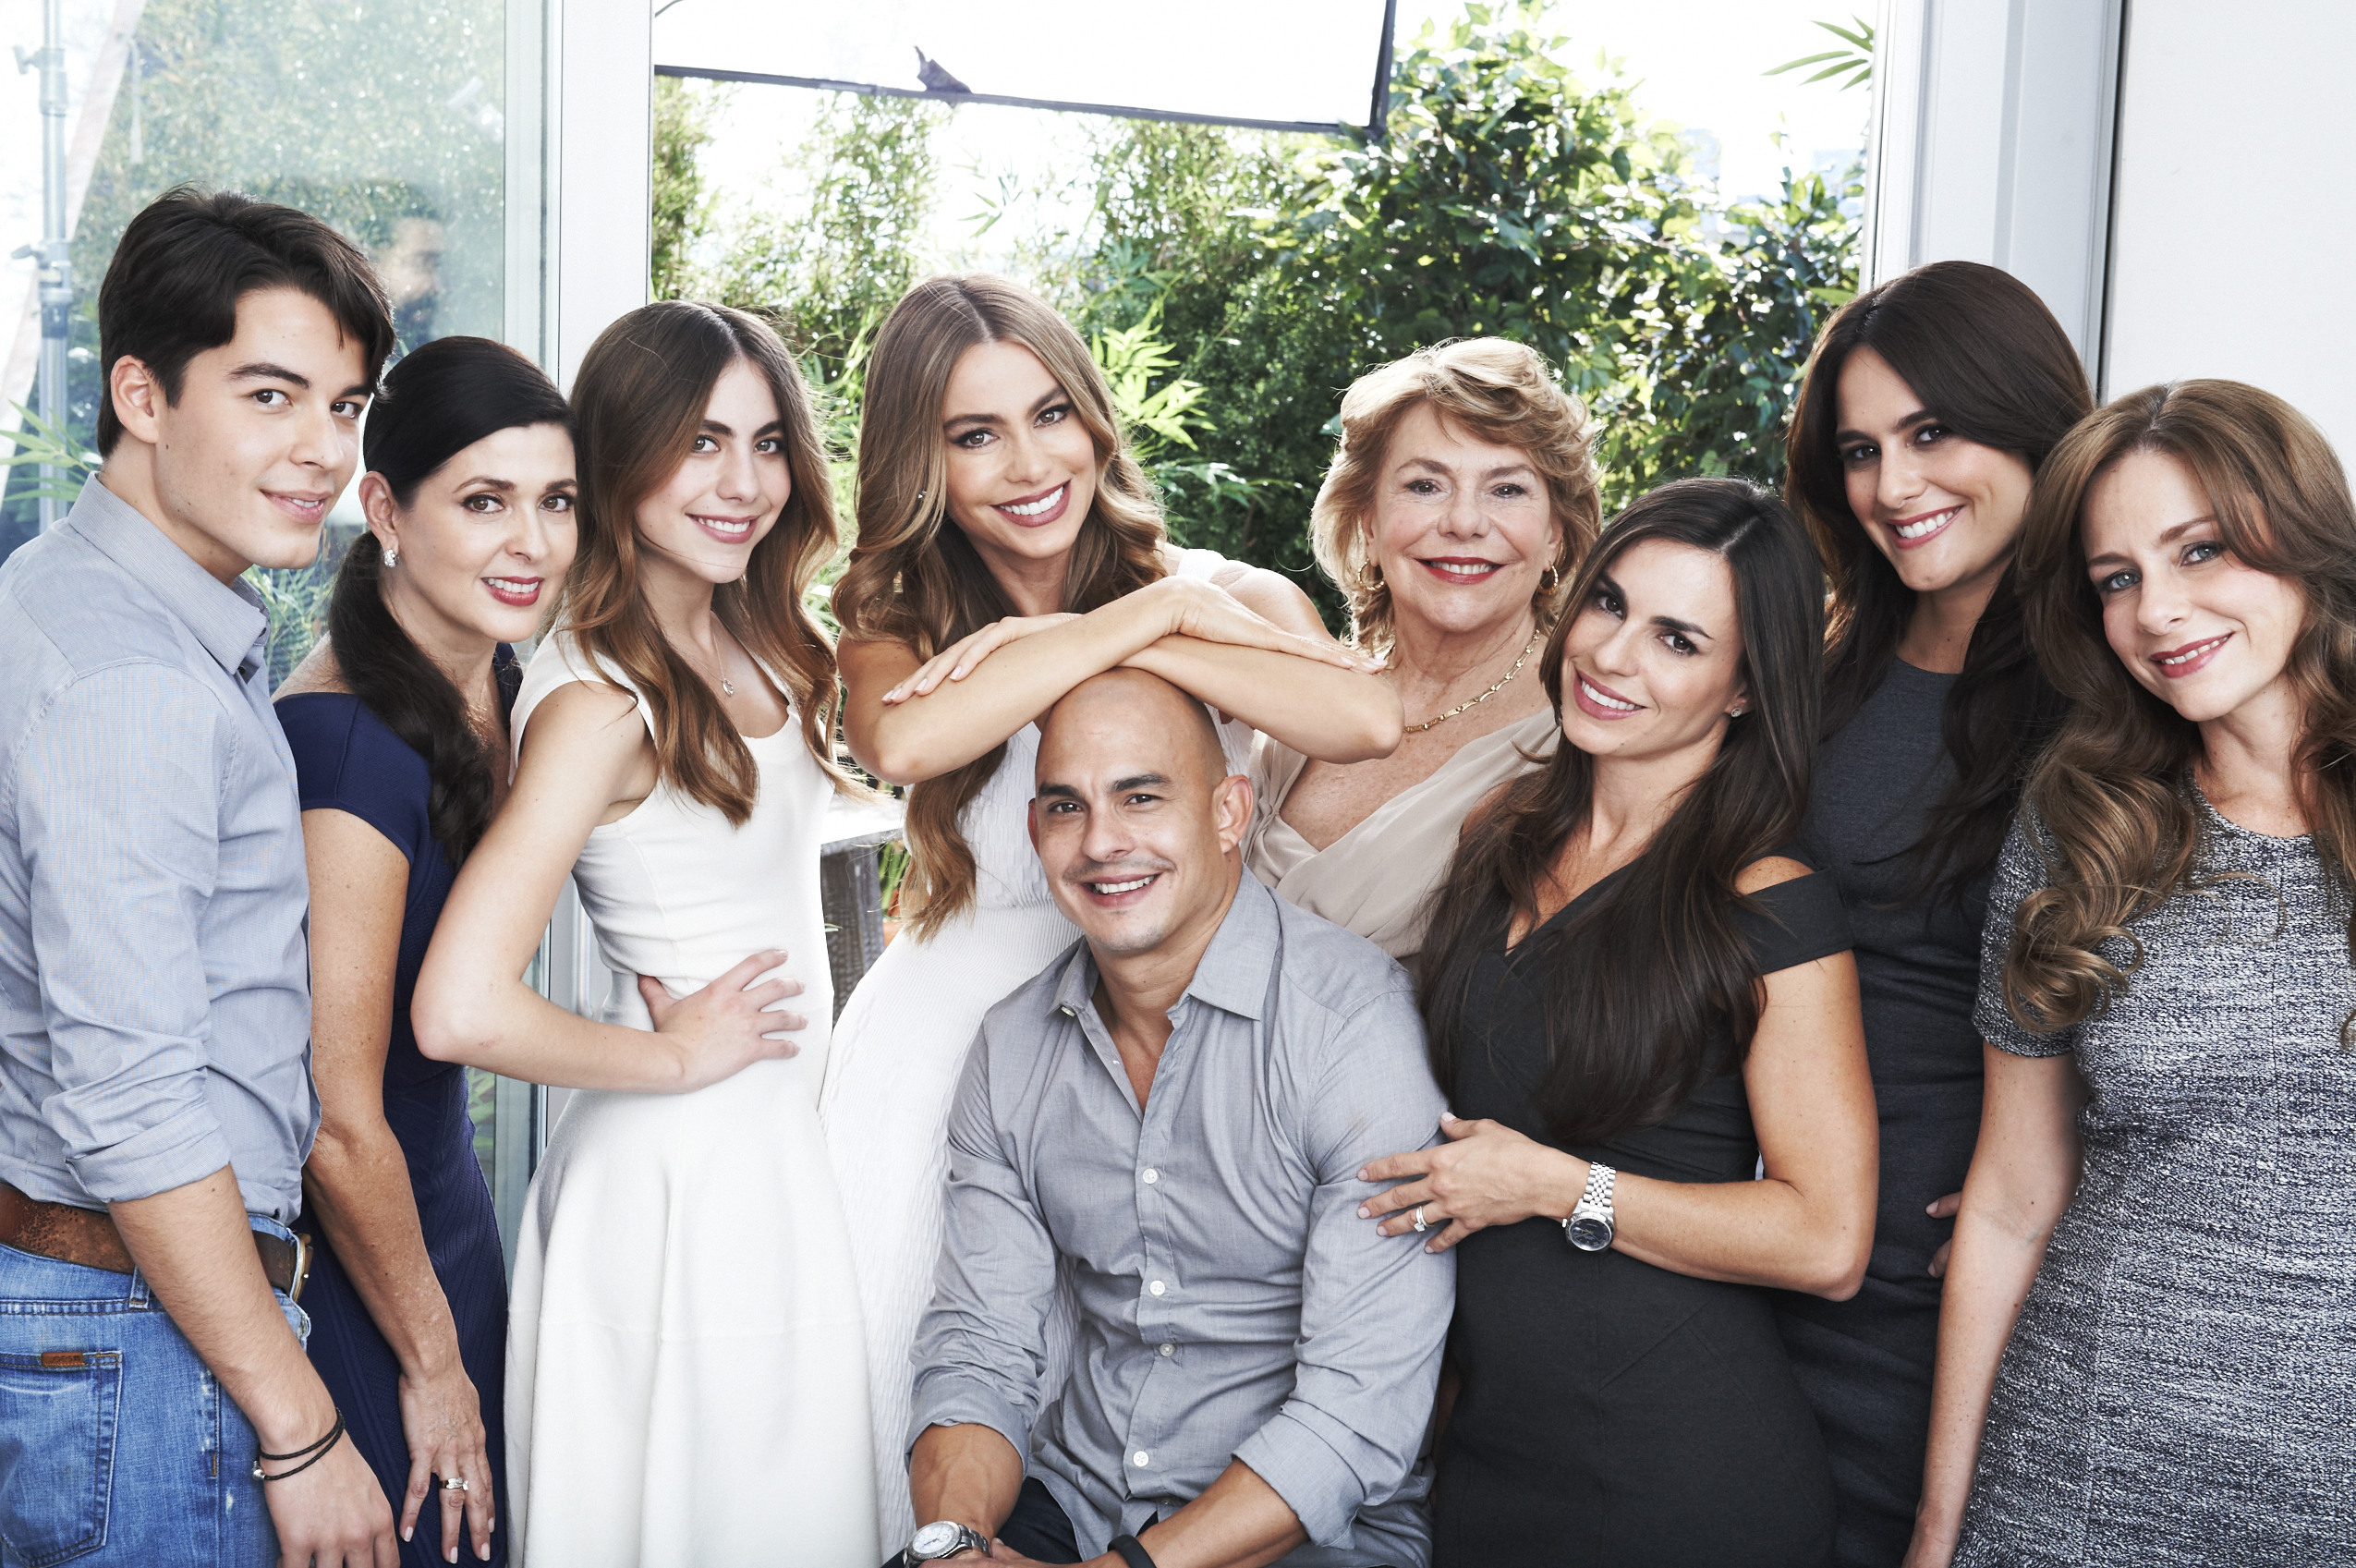 8 out of 9 Vergara use Head & Shoulders, now it's your turn to prove that you can be #PartOfOurFamily! Follow @HeadShoulders on Twitter or Instagram and share a photo of your flake-free hair with the hashtag #PartOfOurFamily #sweeps @HeadShoulders for a chance to meet Sofia Vergara! (Photo: Business Wire)